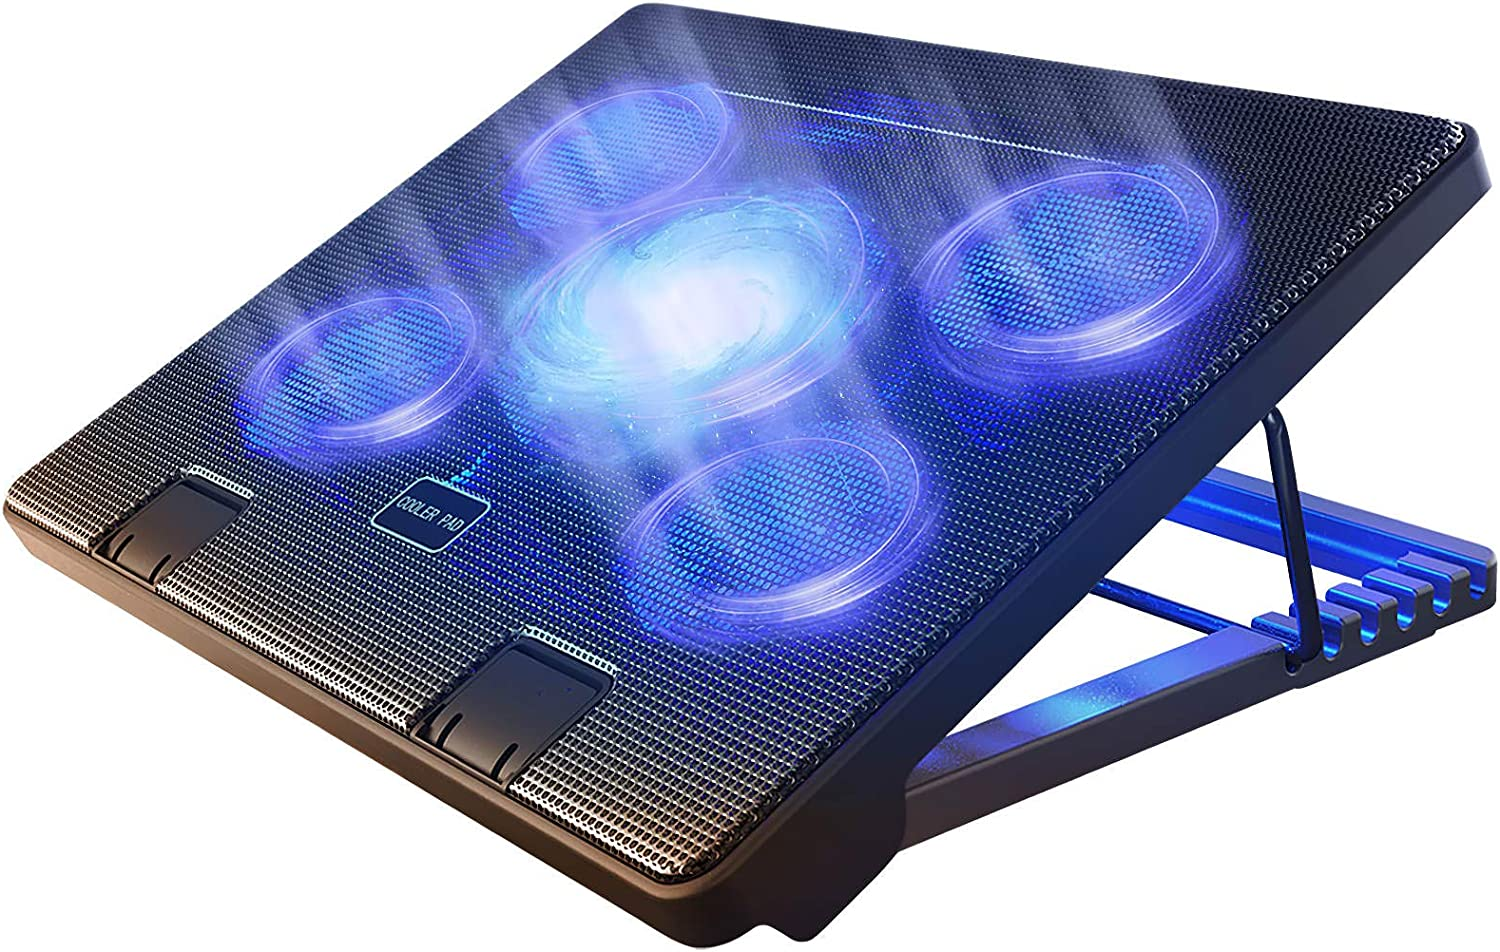 Top 10 Cooling Pads for Laptops